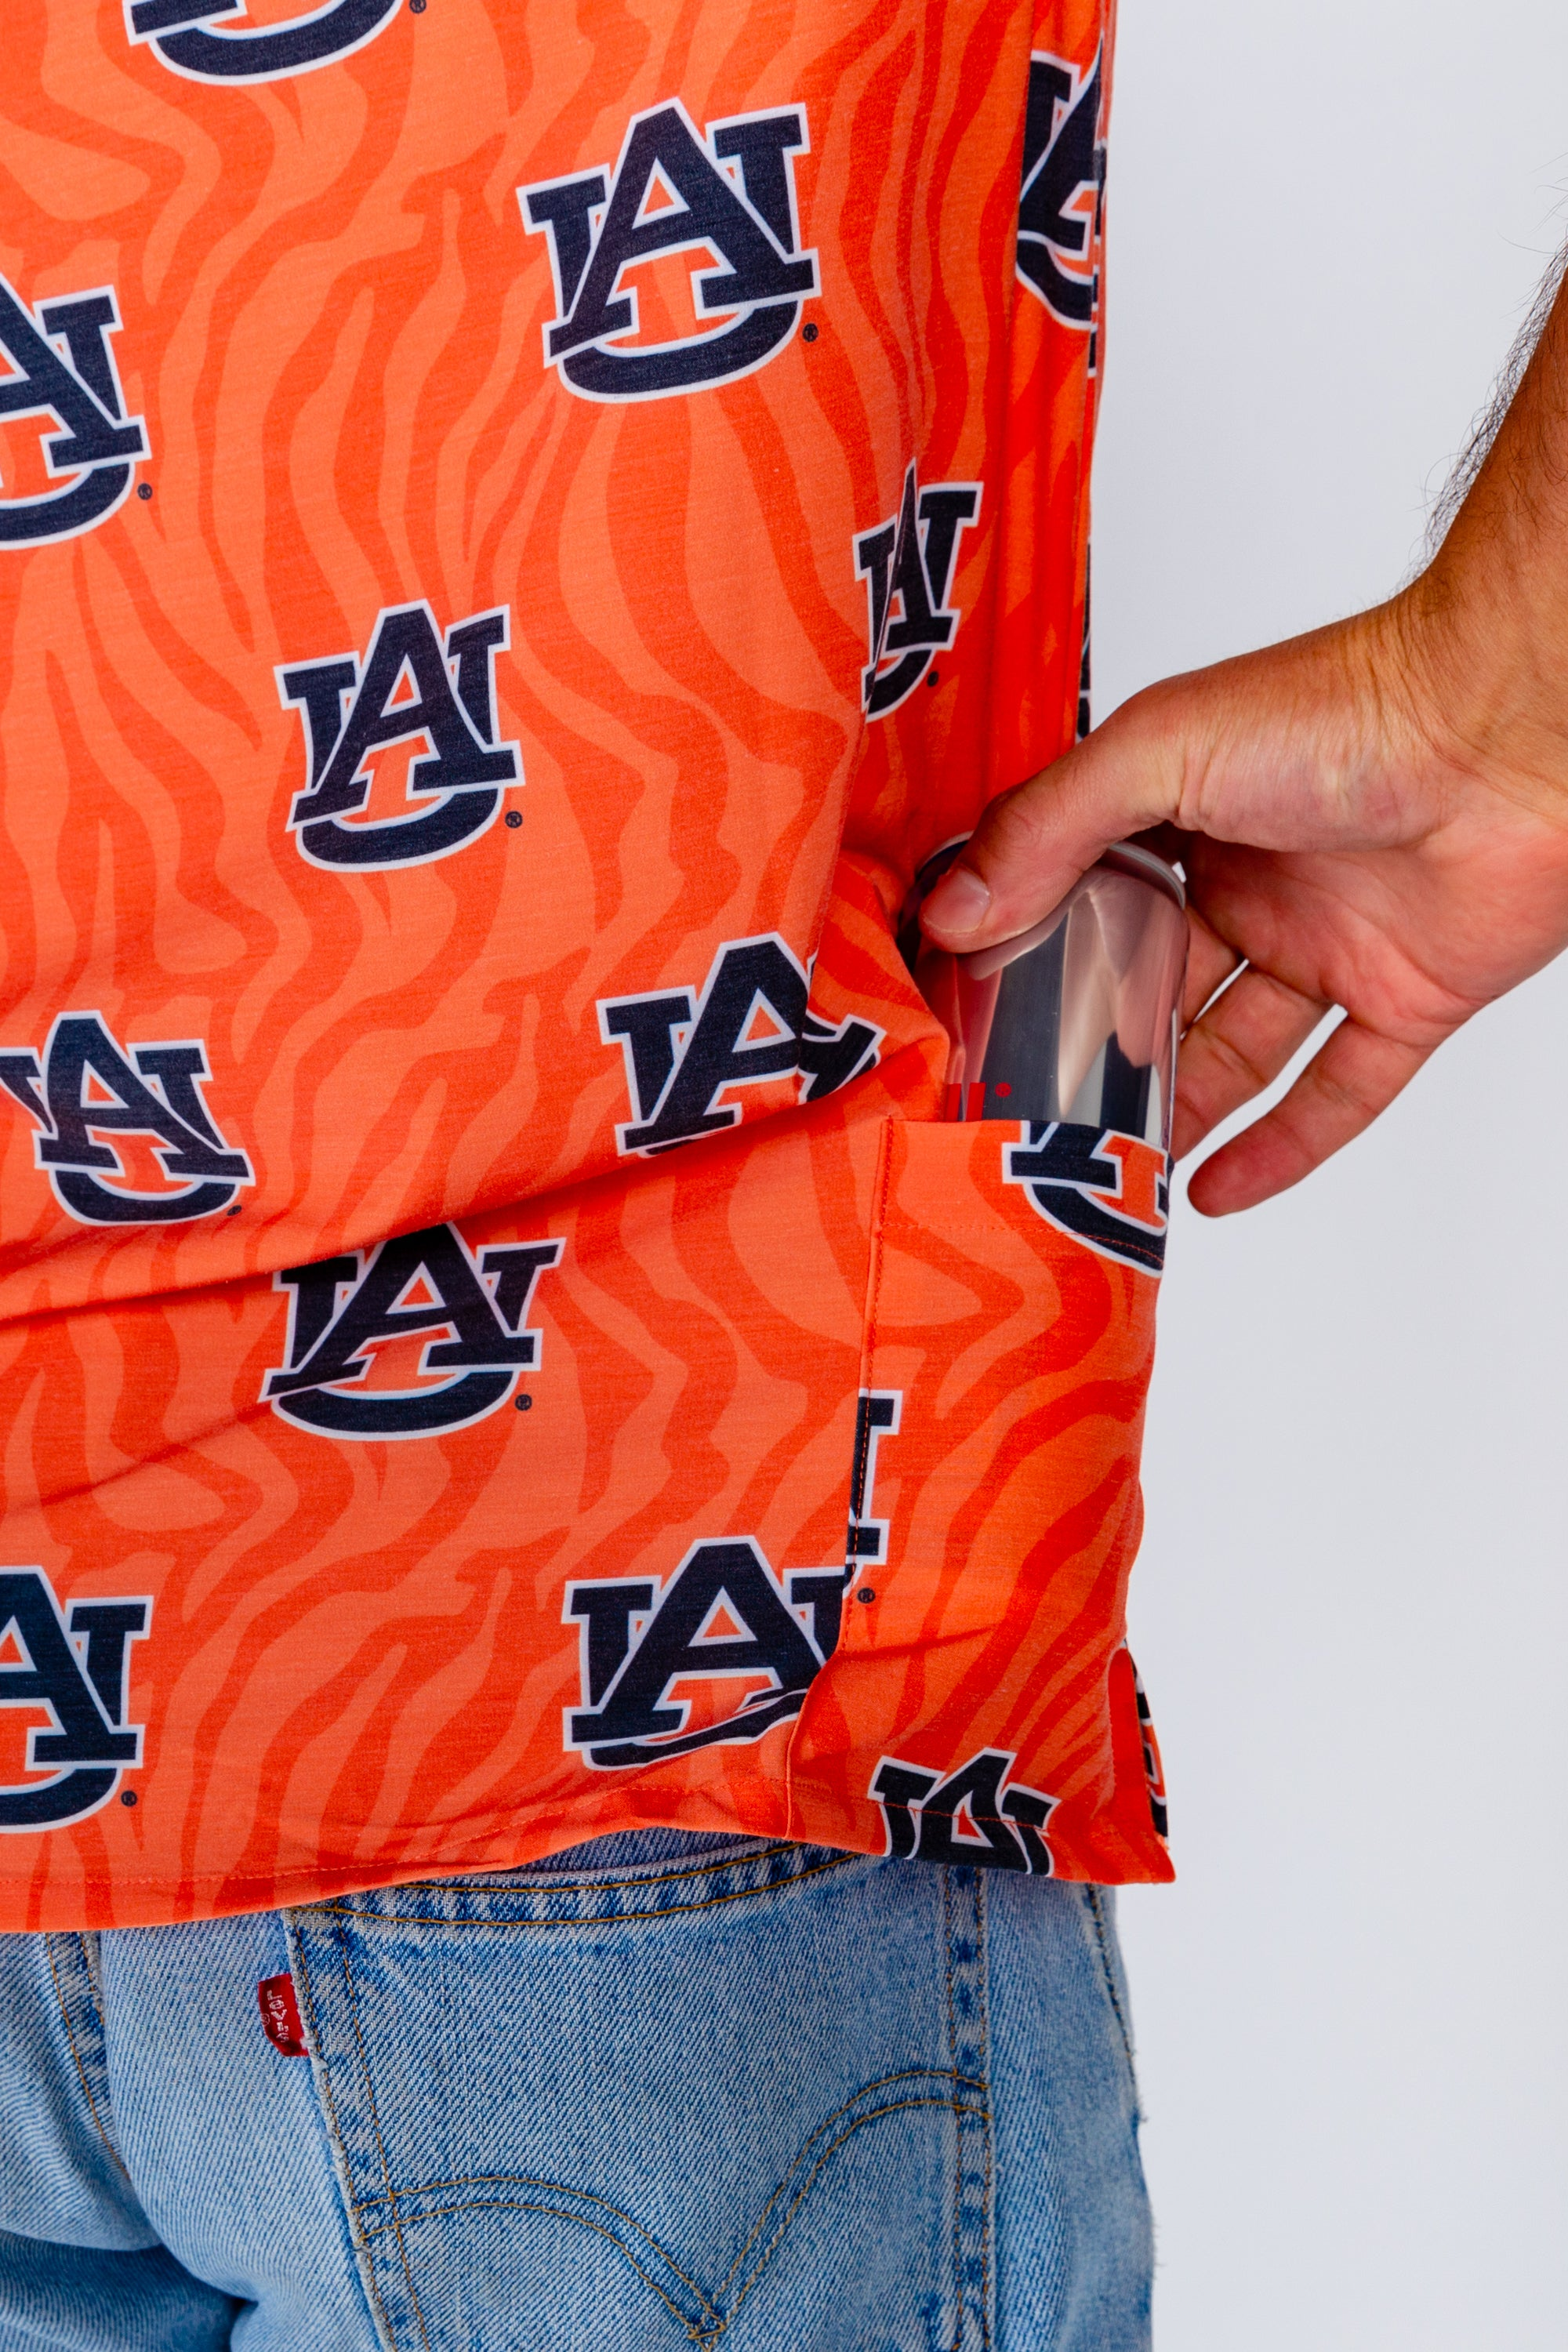 Auburn Tiger Walk Shirt with tailgating pocket